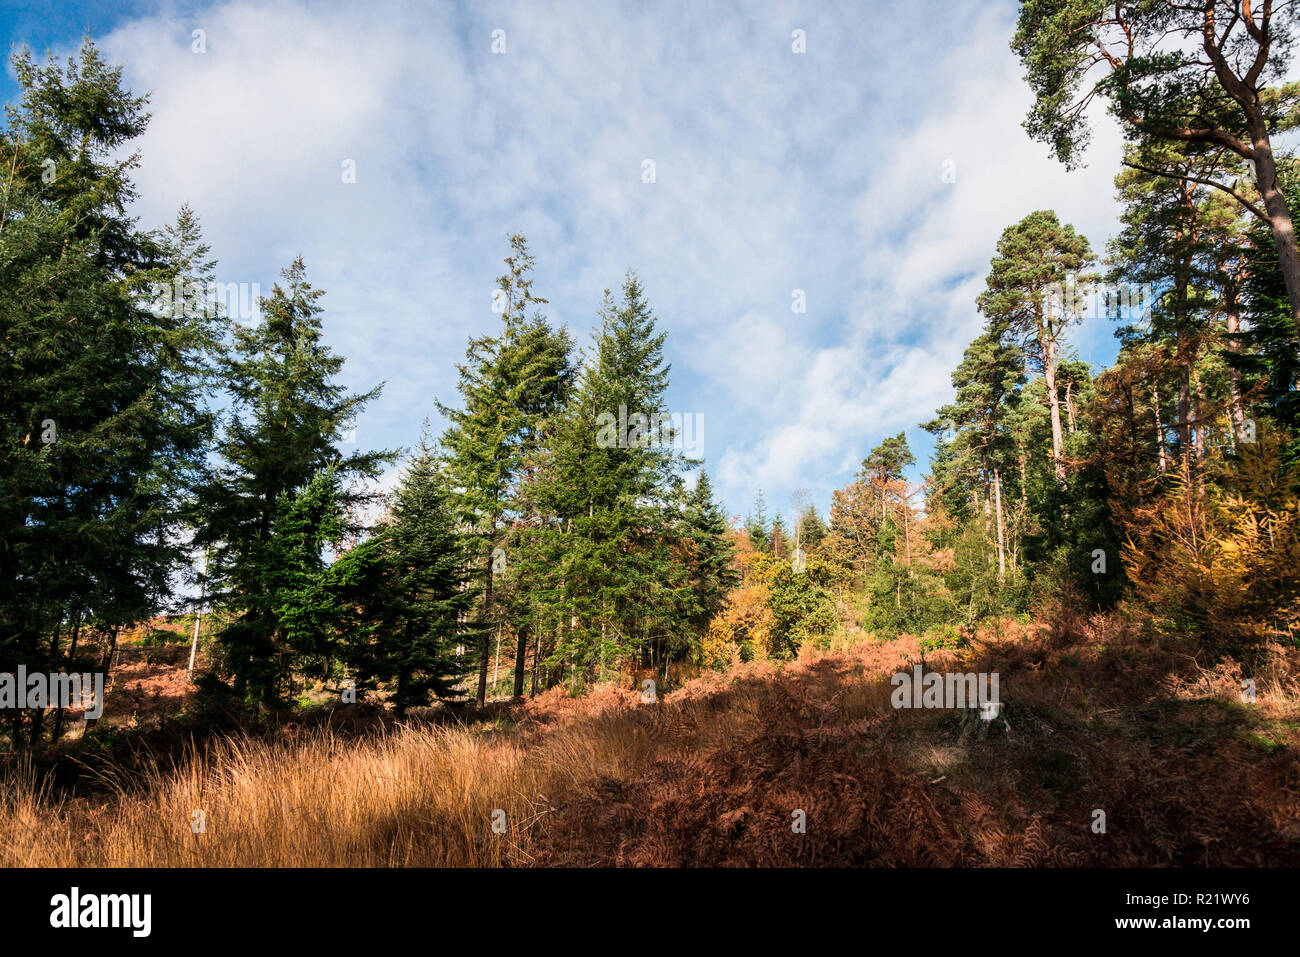 Coniferous trees in woodland in autumn - Stock Image